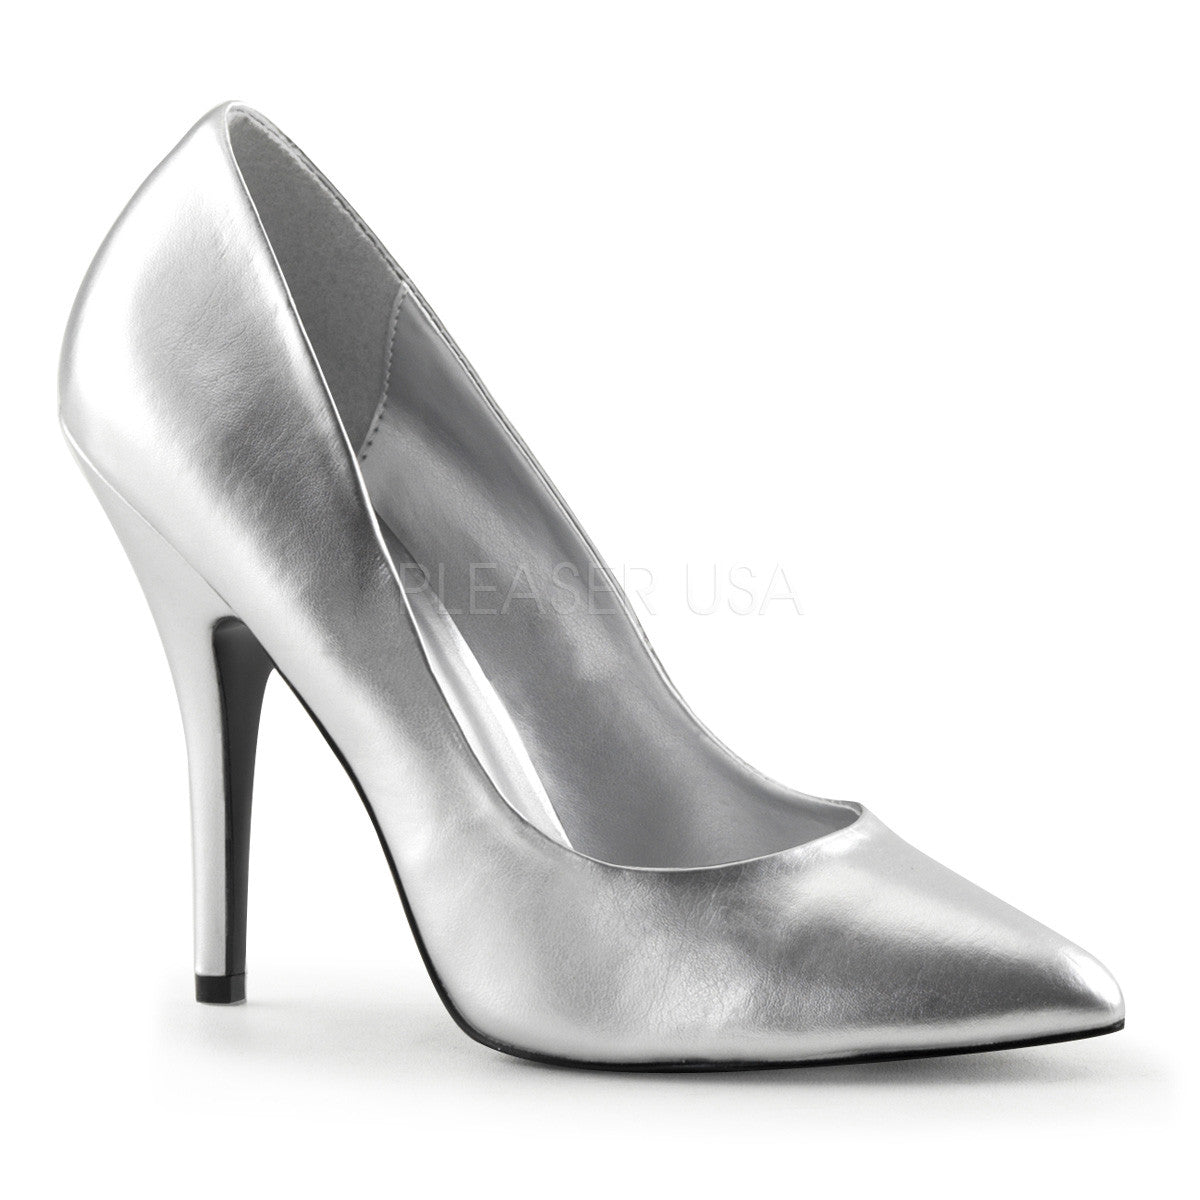 High Heels Pleaser 'VANITY-420' Silber-8 8